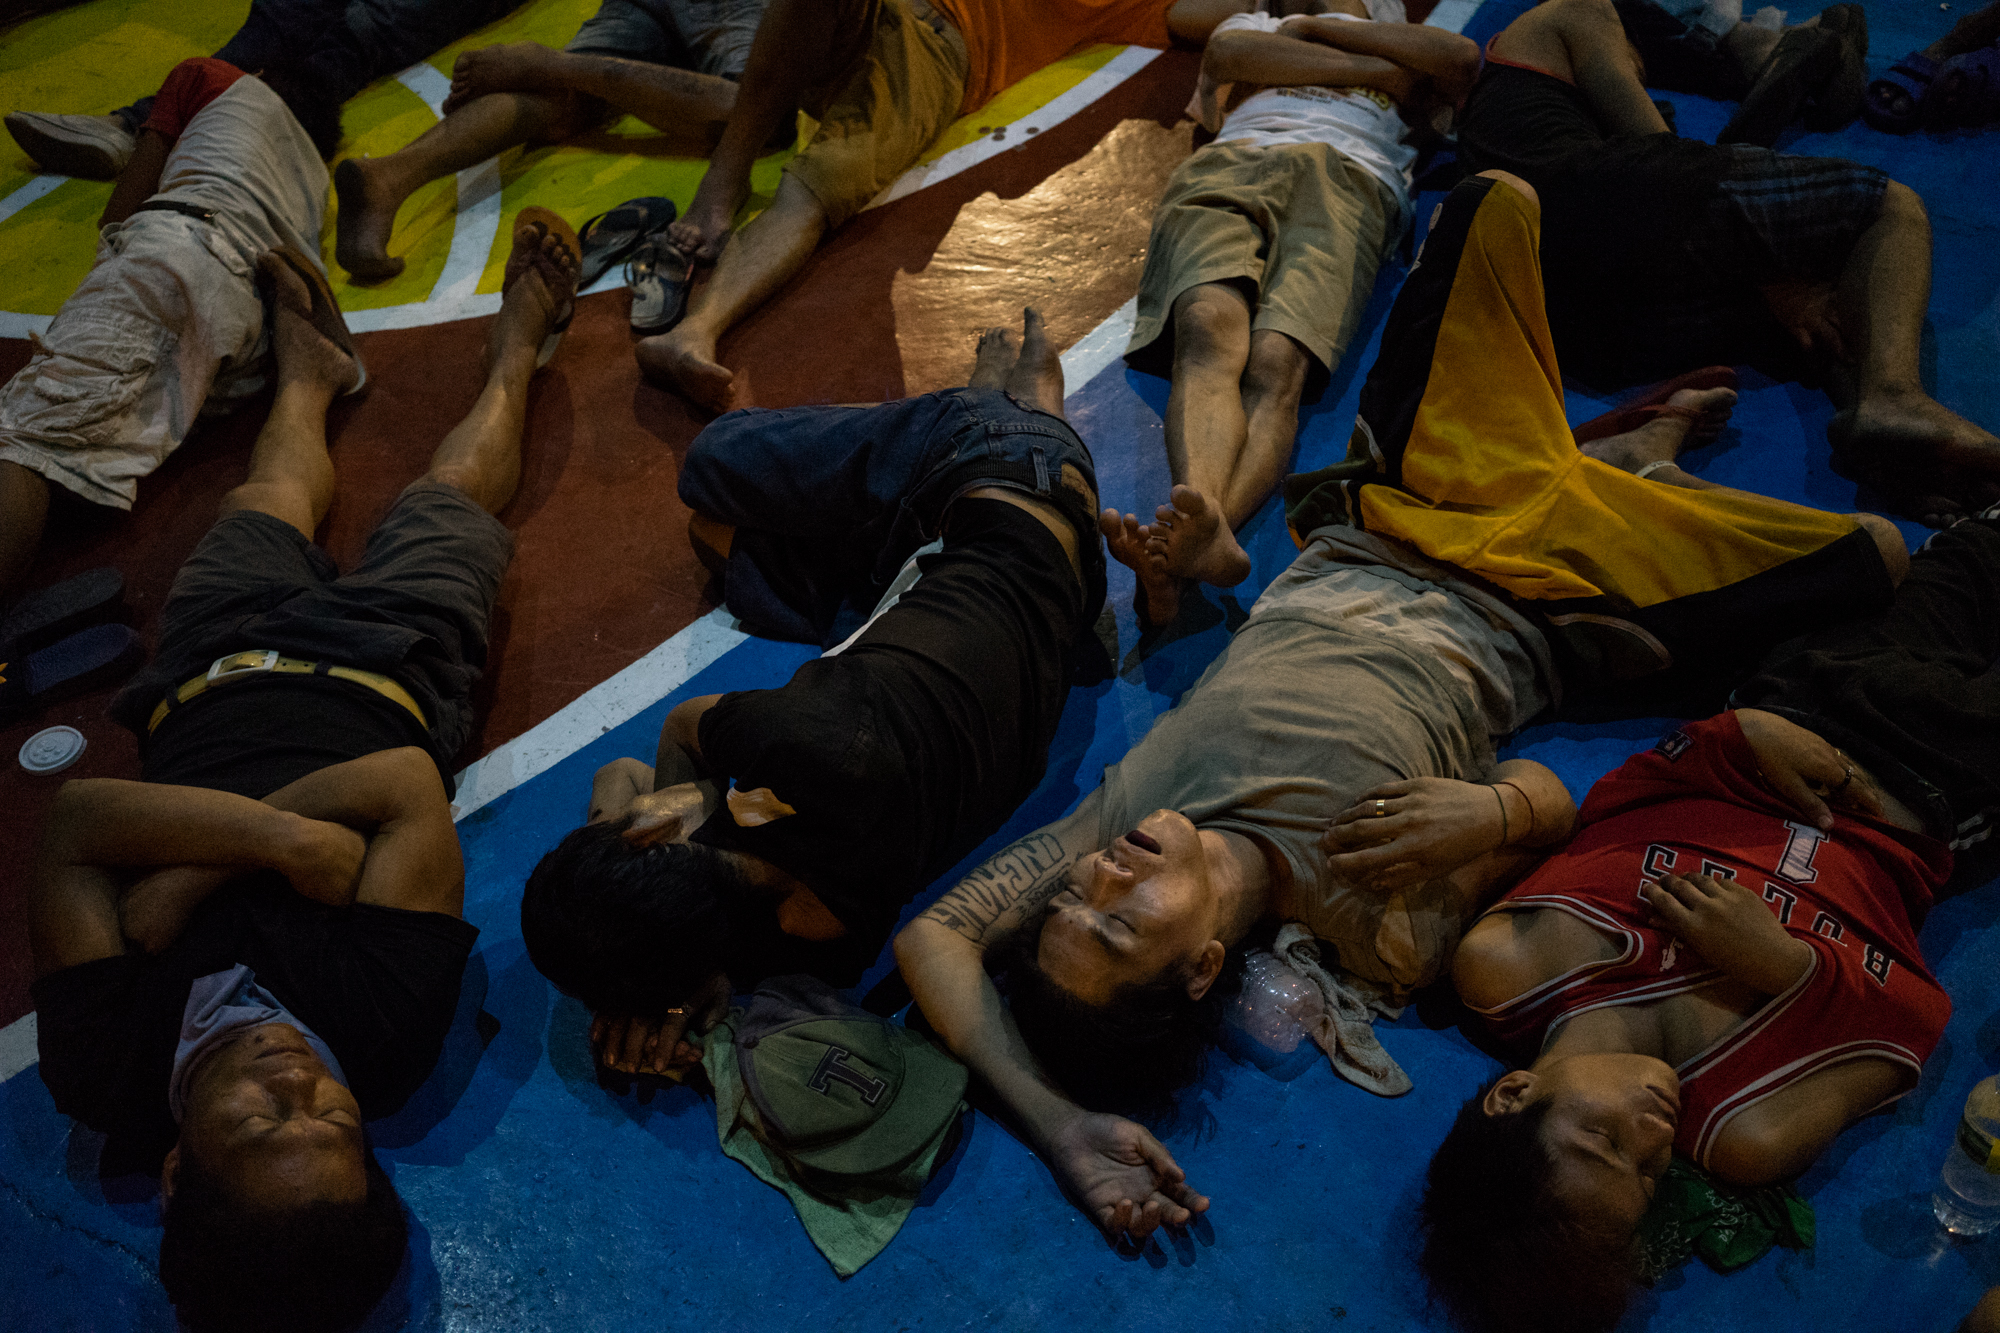 Filipino men are seen sleeping inside a basketball court in a prison on Saturday, September 17, 2016 in Quezon City, Philippines, after being rounded up for an investigation in conjunction with President Rodrigo Duterte's 'War on Drugs.'